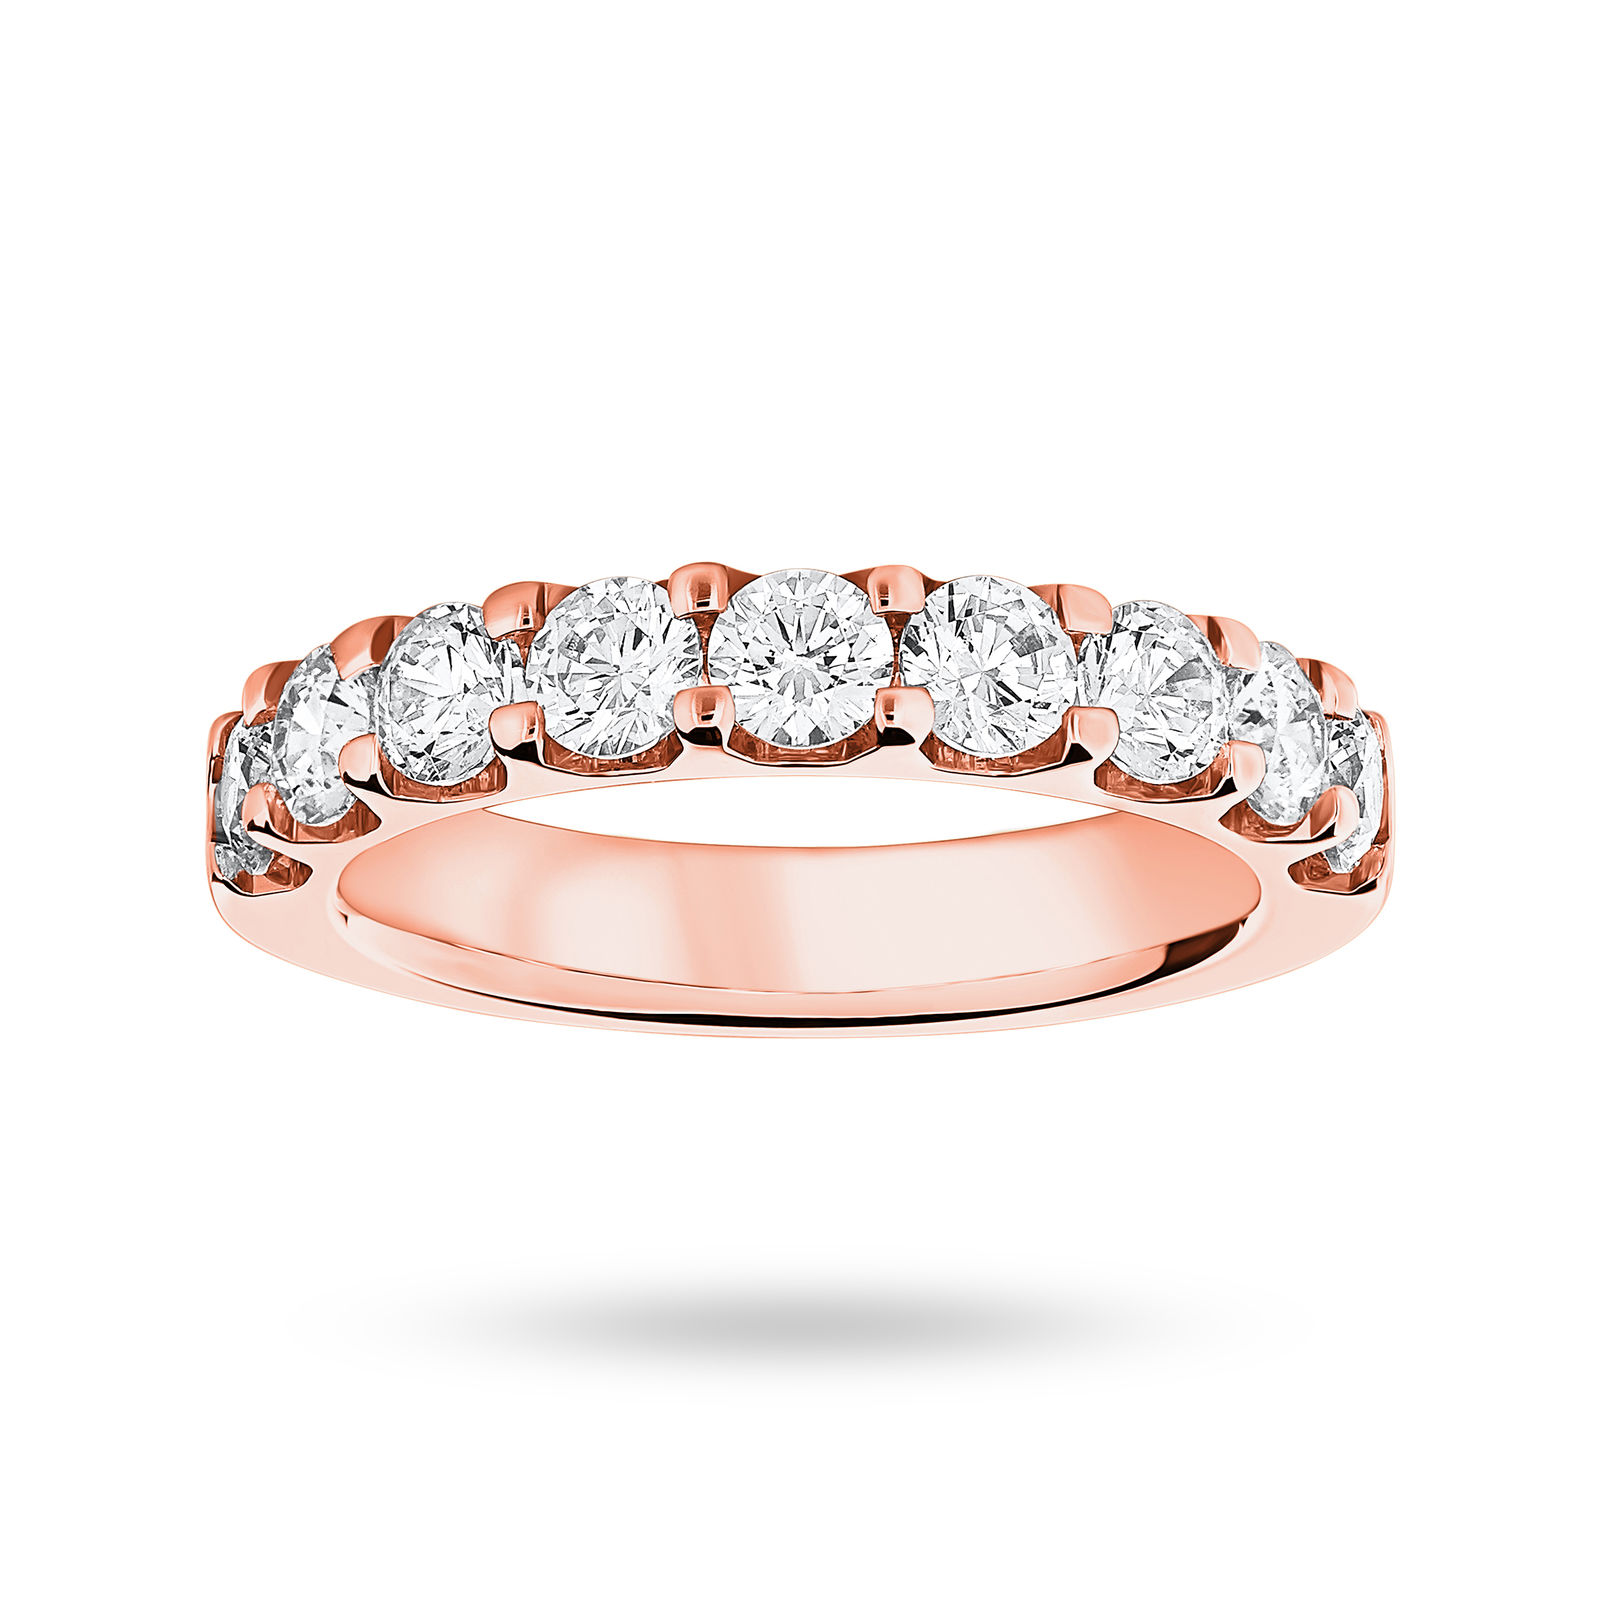 18 Carat Rose Gold 1.45 Carat Brilliant Cut Half Eternity